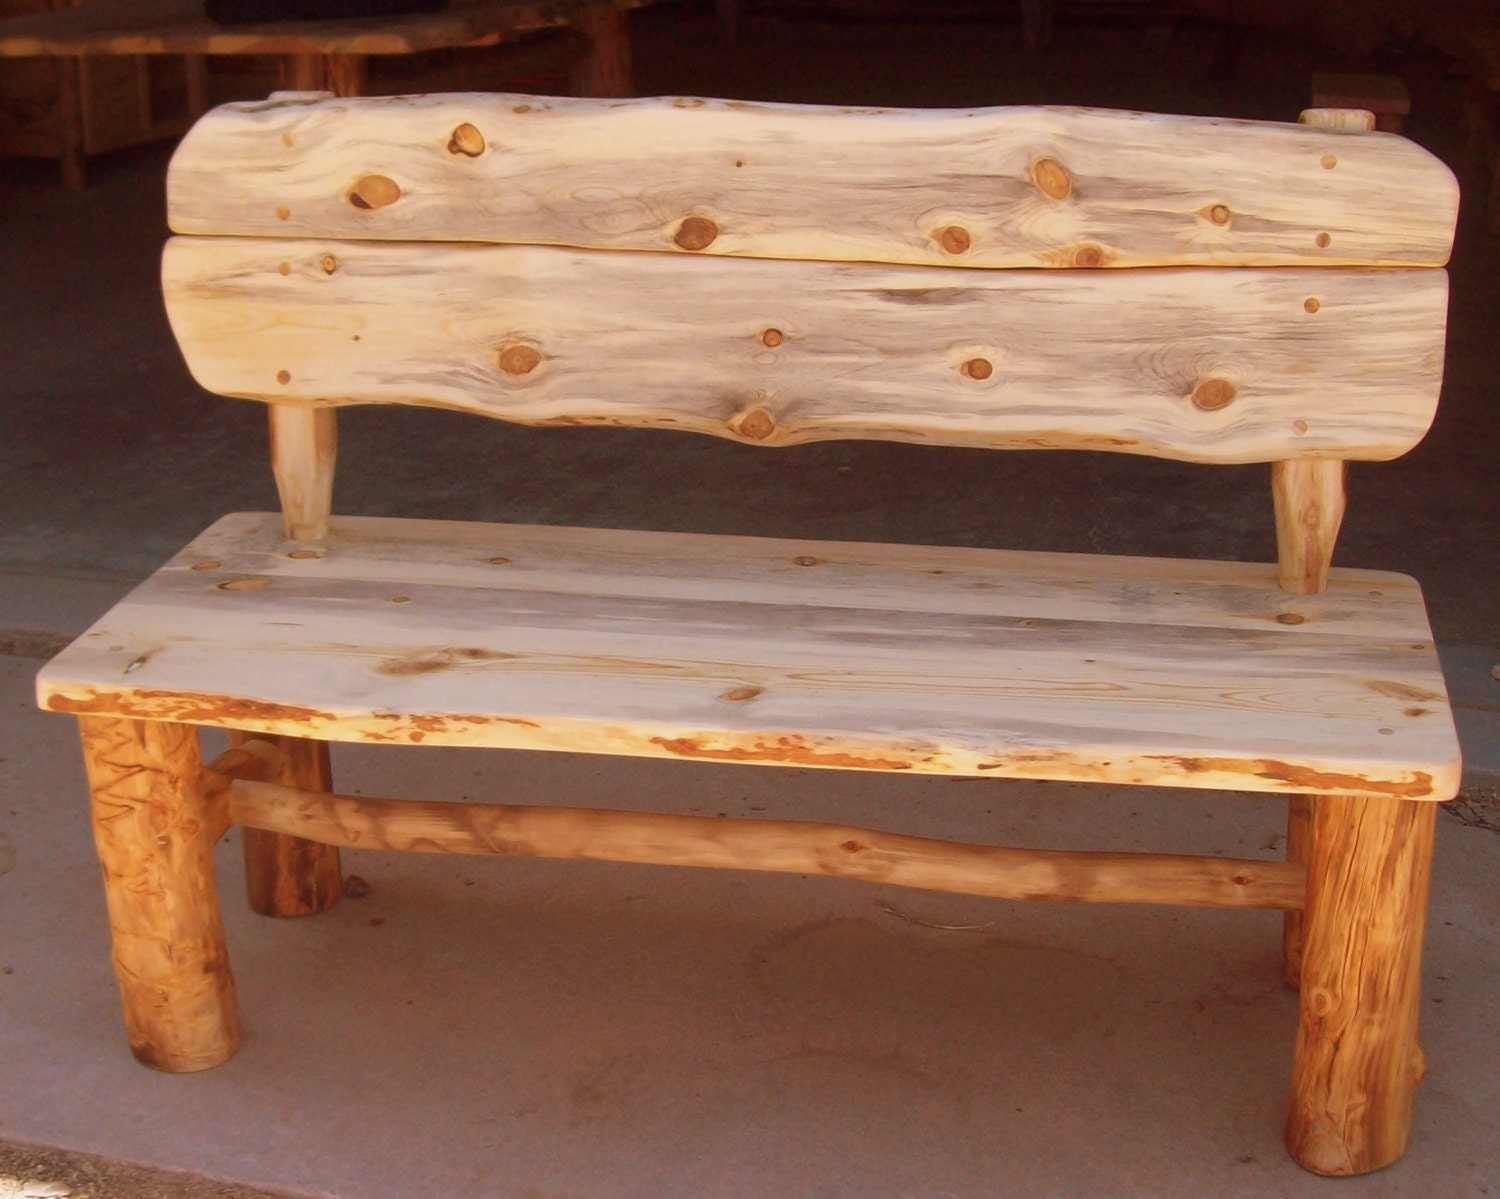 How to make rustic wood furniture furniture design ideas for Furniture making ideas